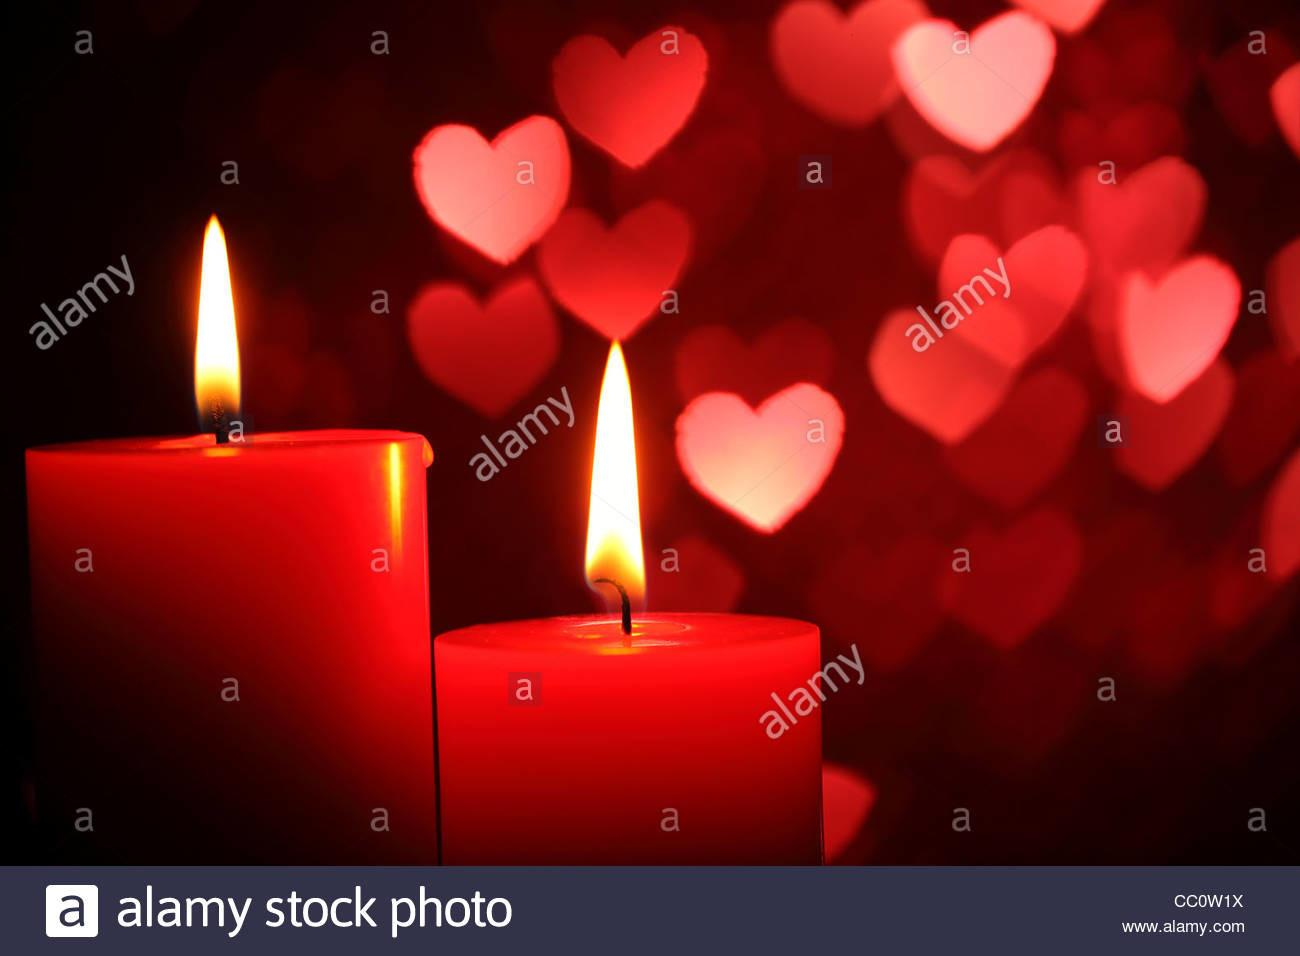 Burning Candles Valentine Day Weddings Events